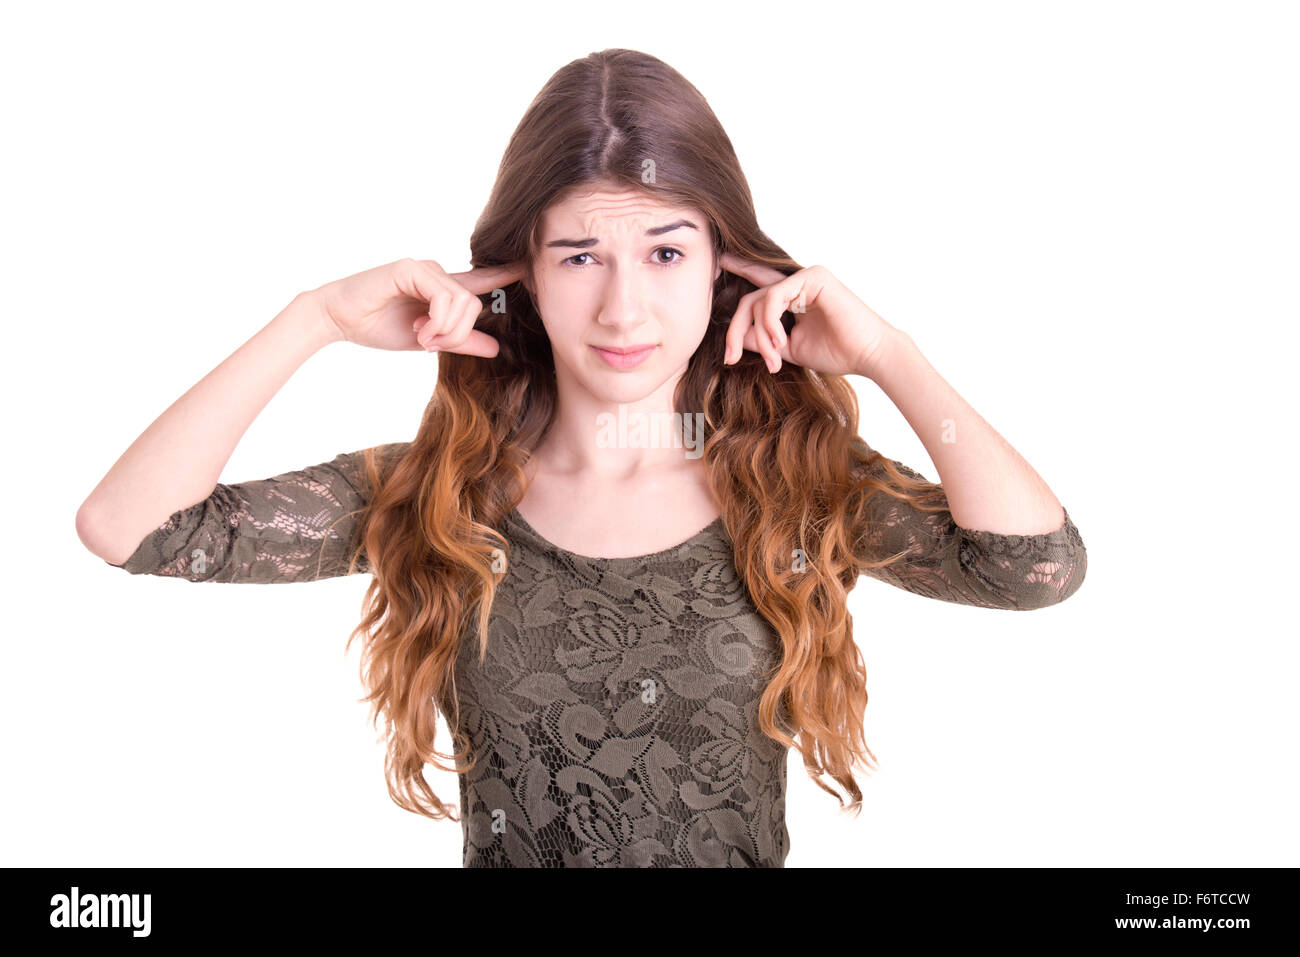 Female with fingers in ears to block sound, isolated in white - Stock Image